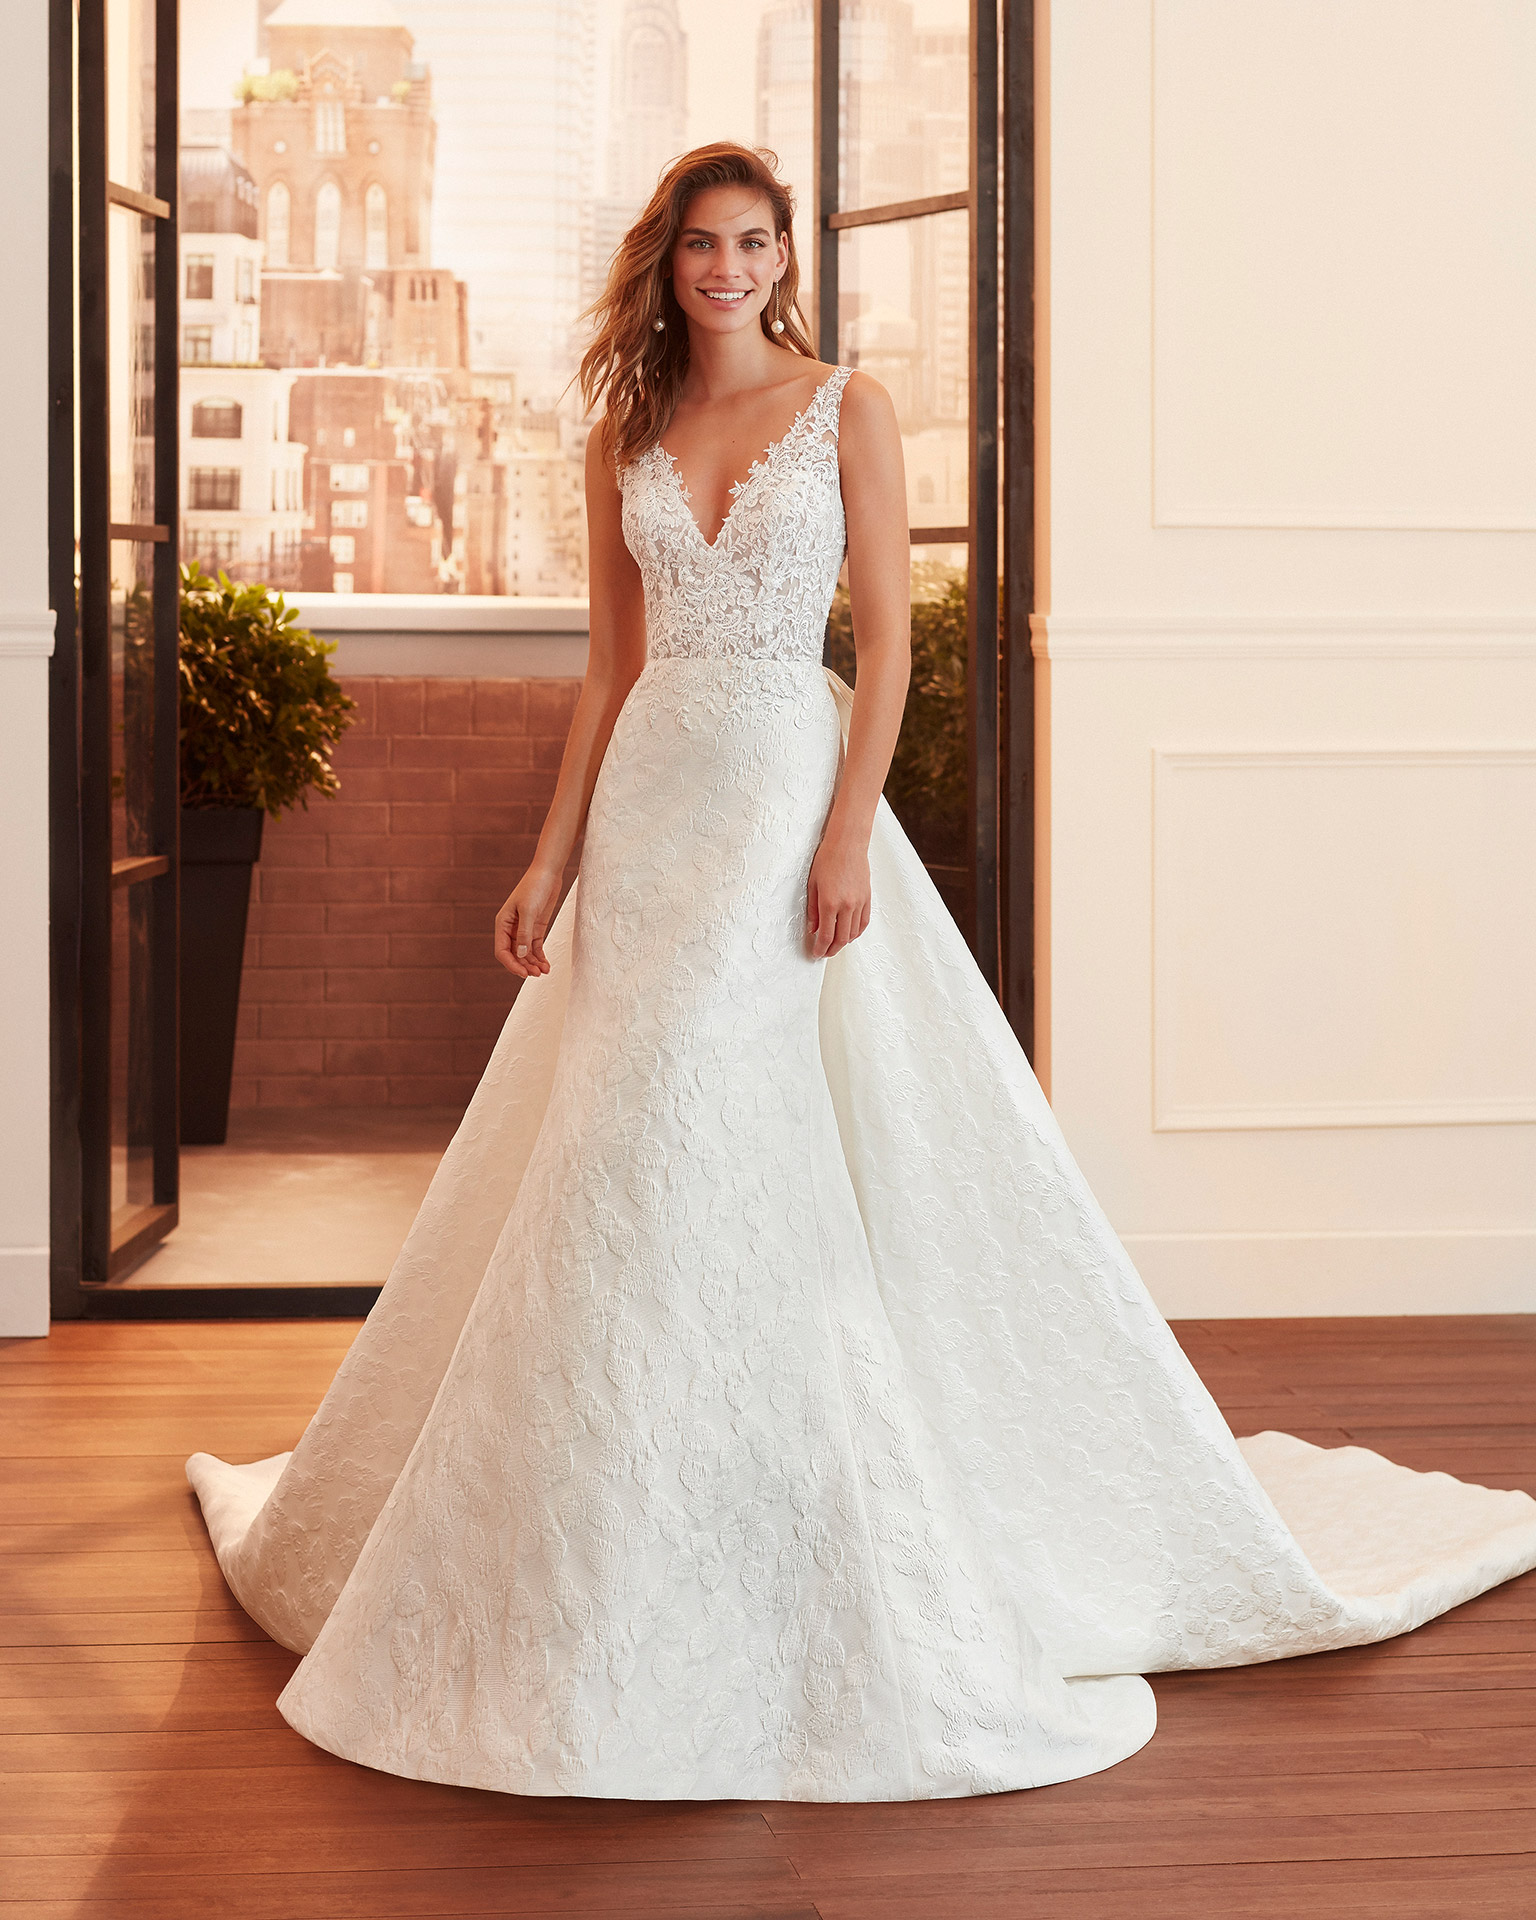 Sheath-style wedding dress and train in brocade and lace with beading, V-neckline and back with sheer inserts. 2020  Collection.